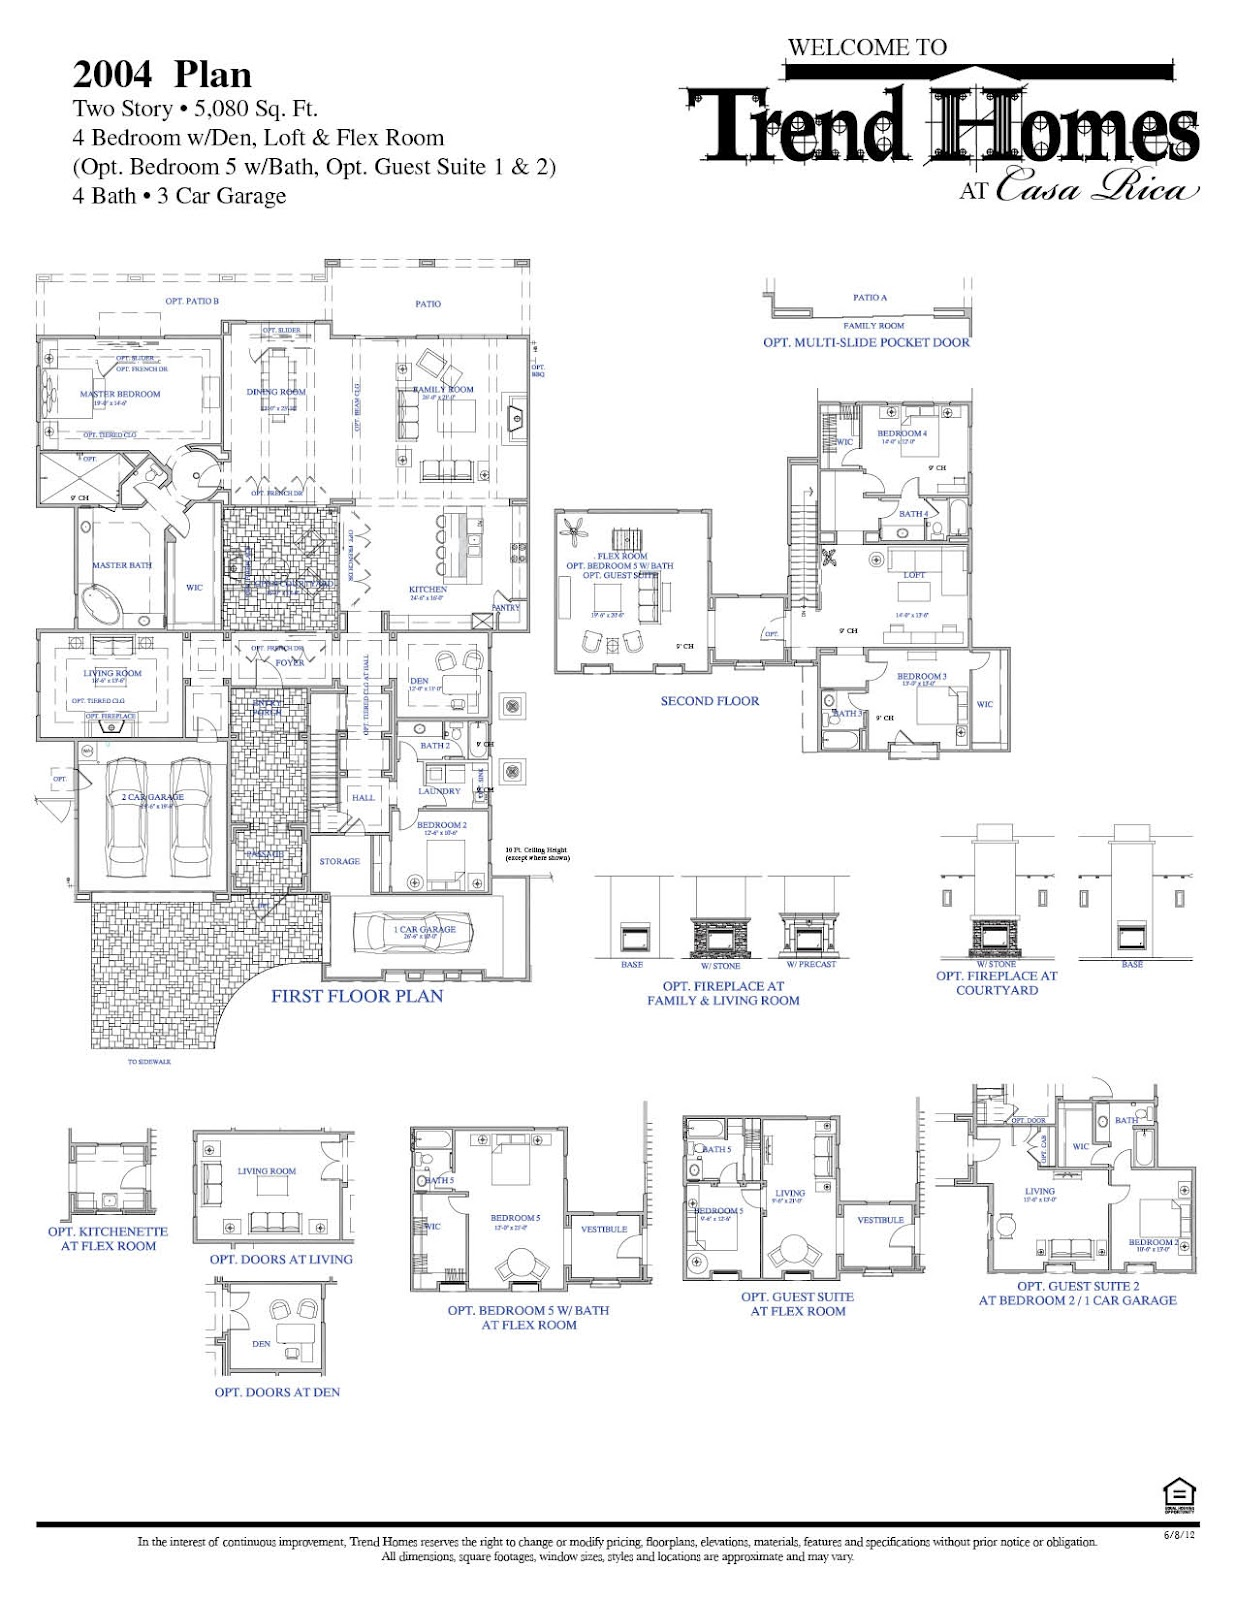 Homes For Sale at Casa Rica in Gilbert – Trend Homes Floor Plans